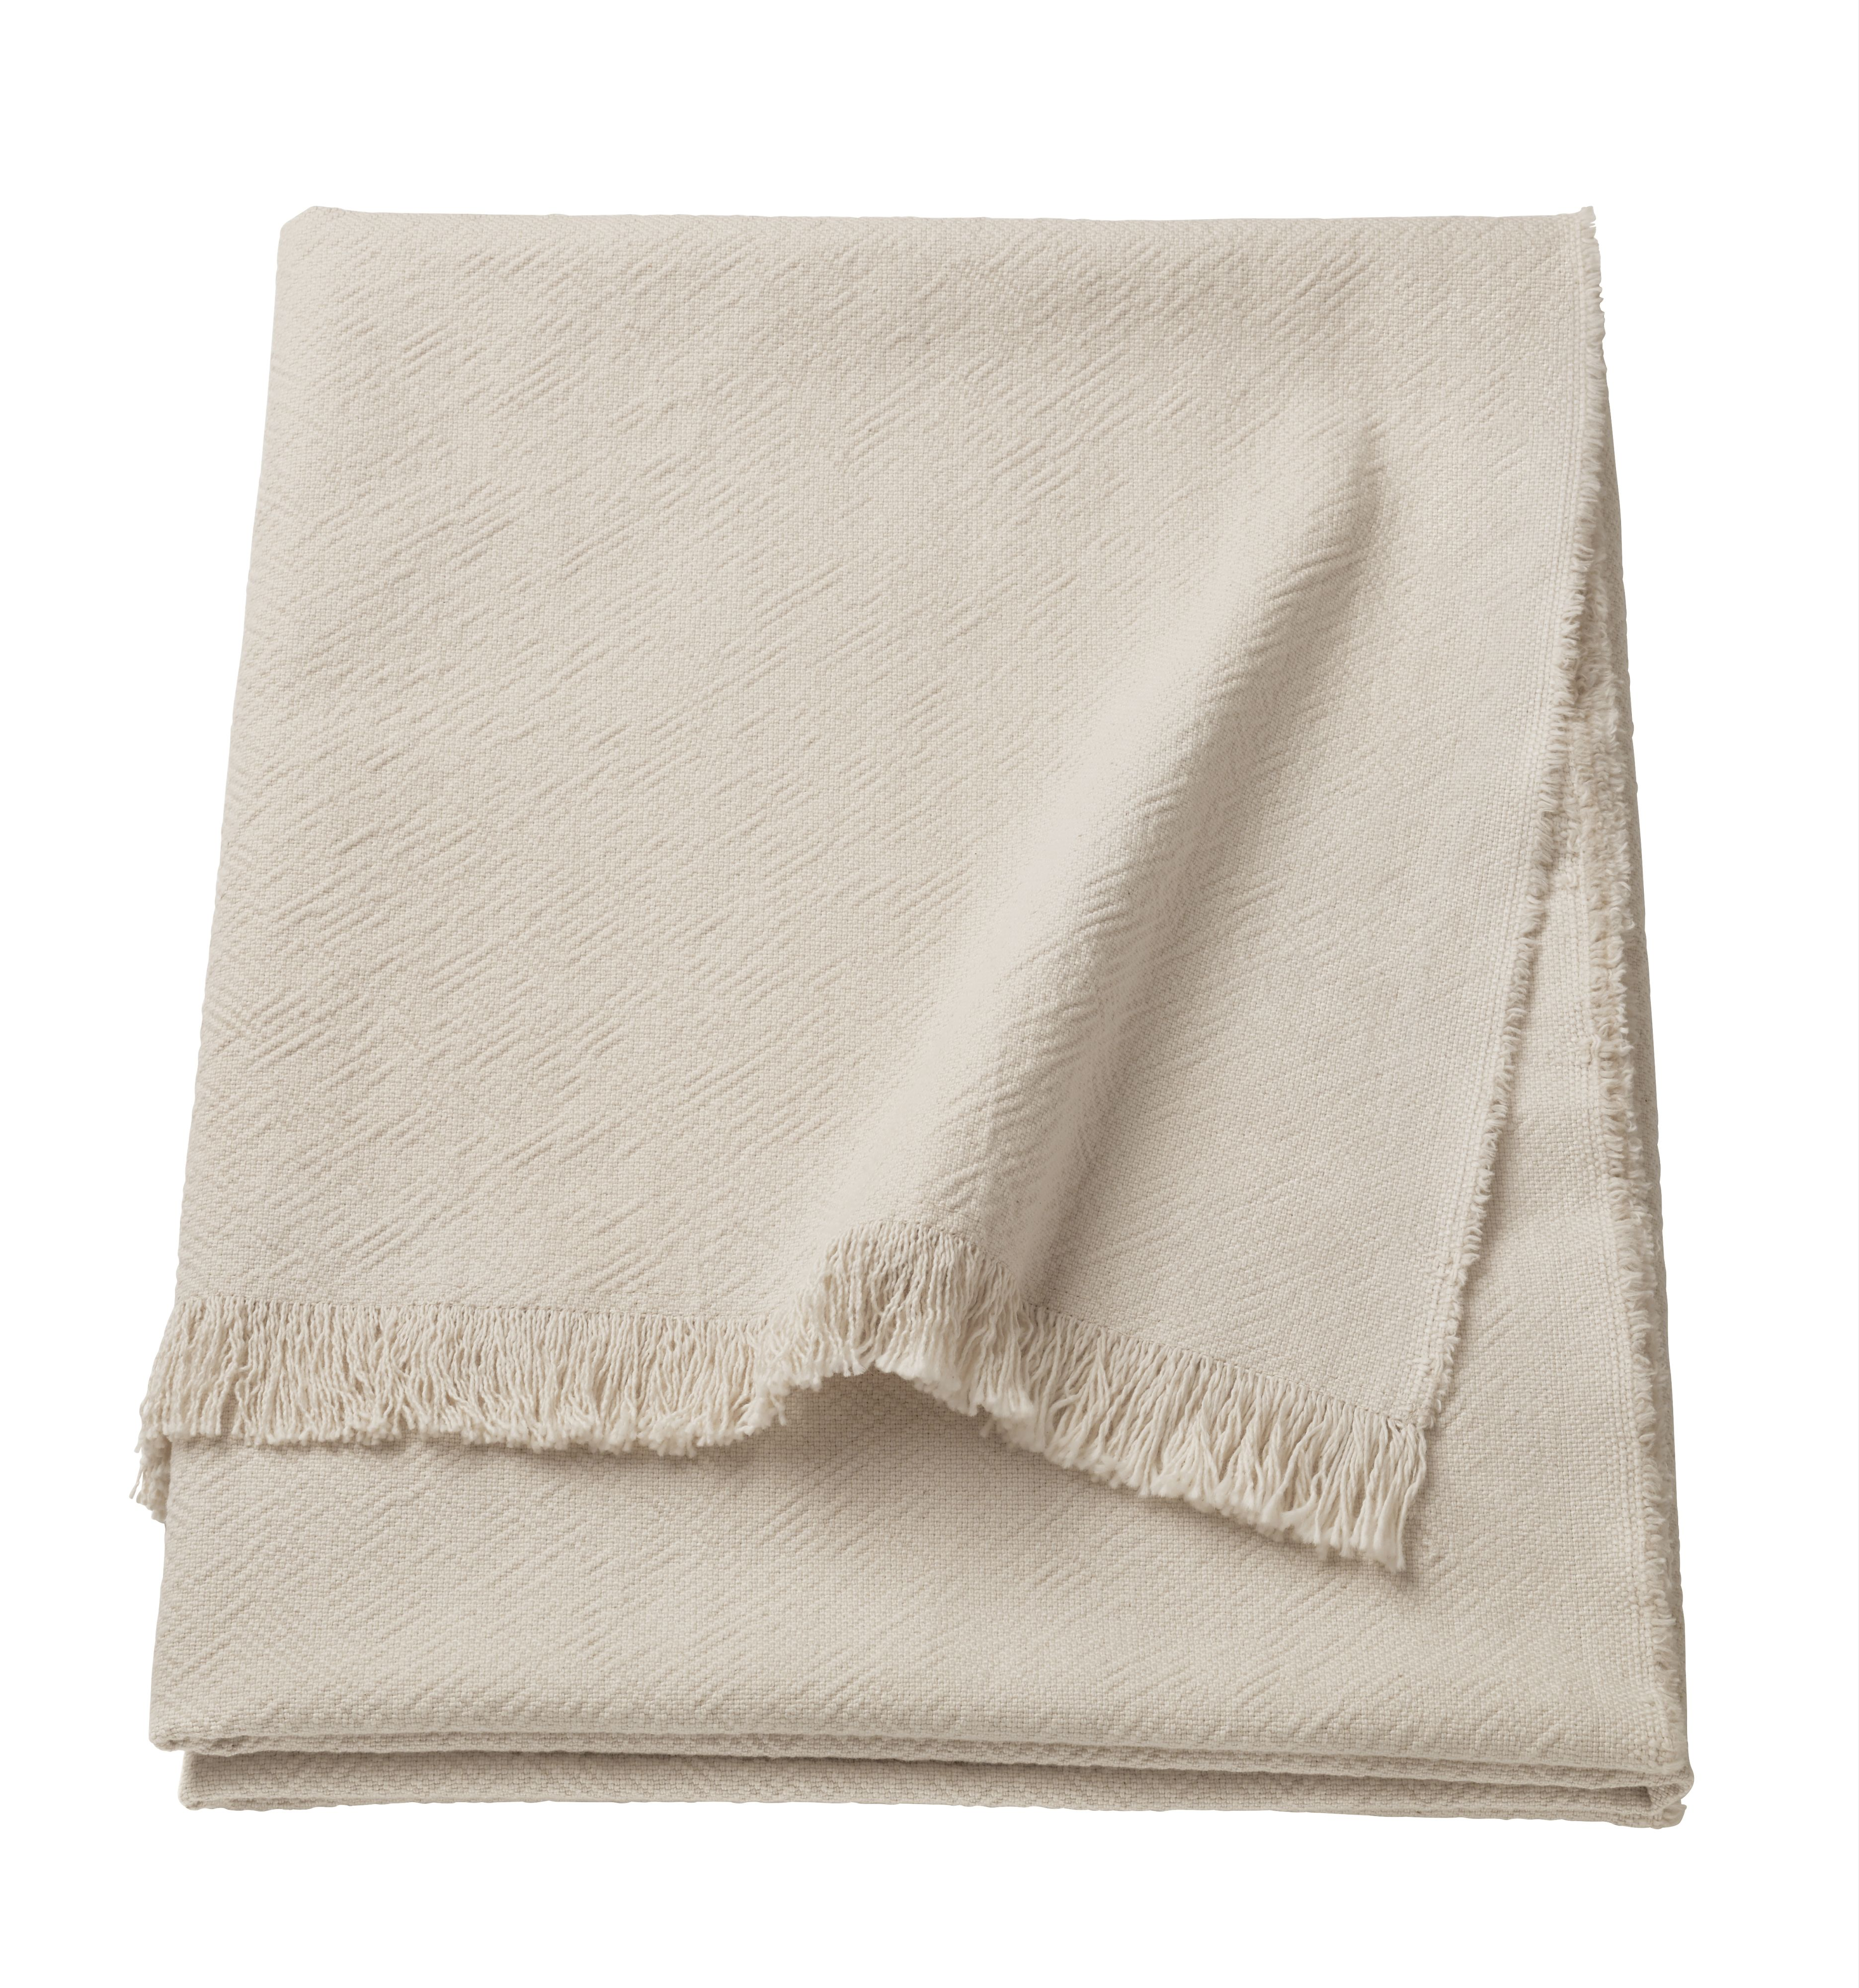 Ikea Keep Off Rug Off White: JOFRID Throw, Natural In 2019